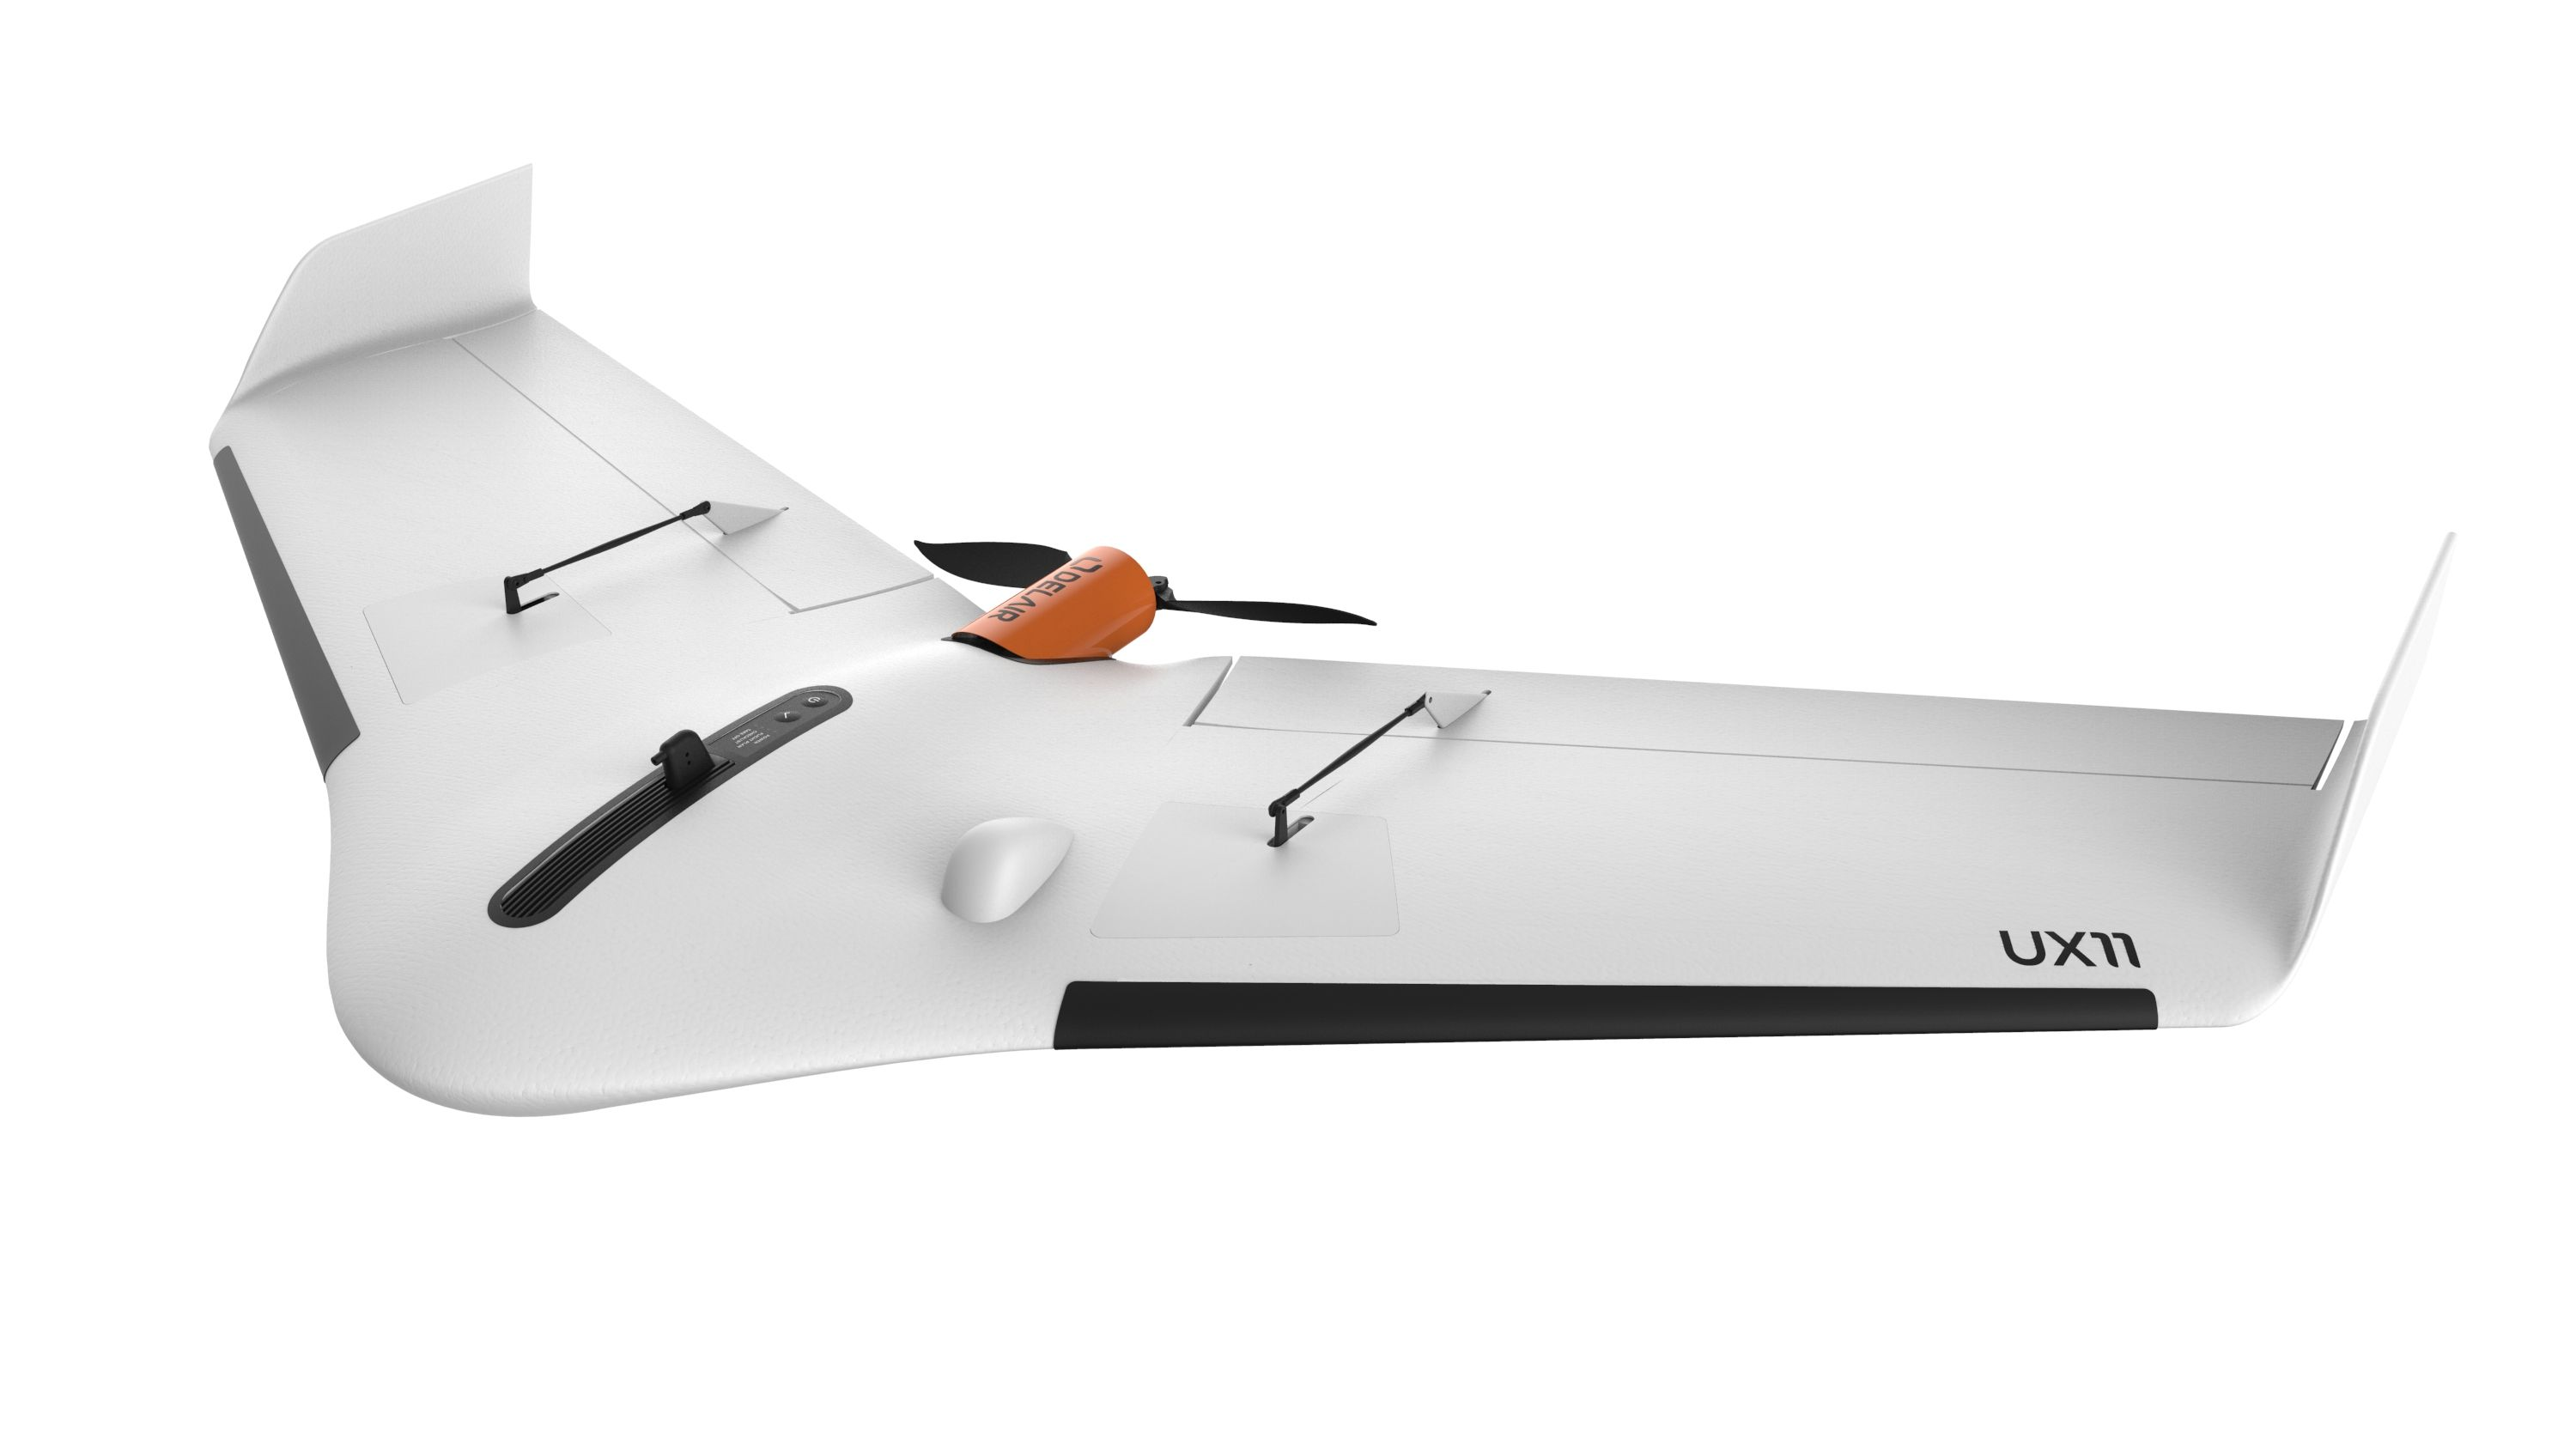 Industrial fixed wing drone Delair UX11